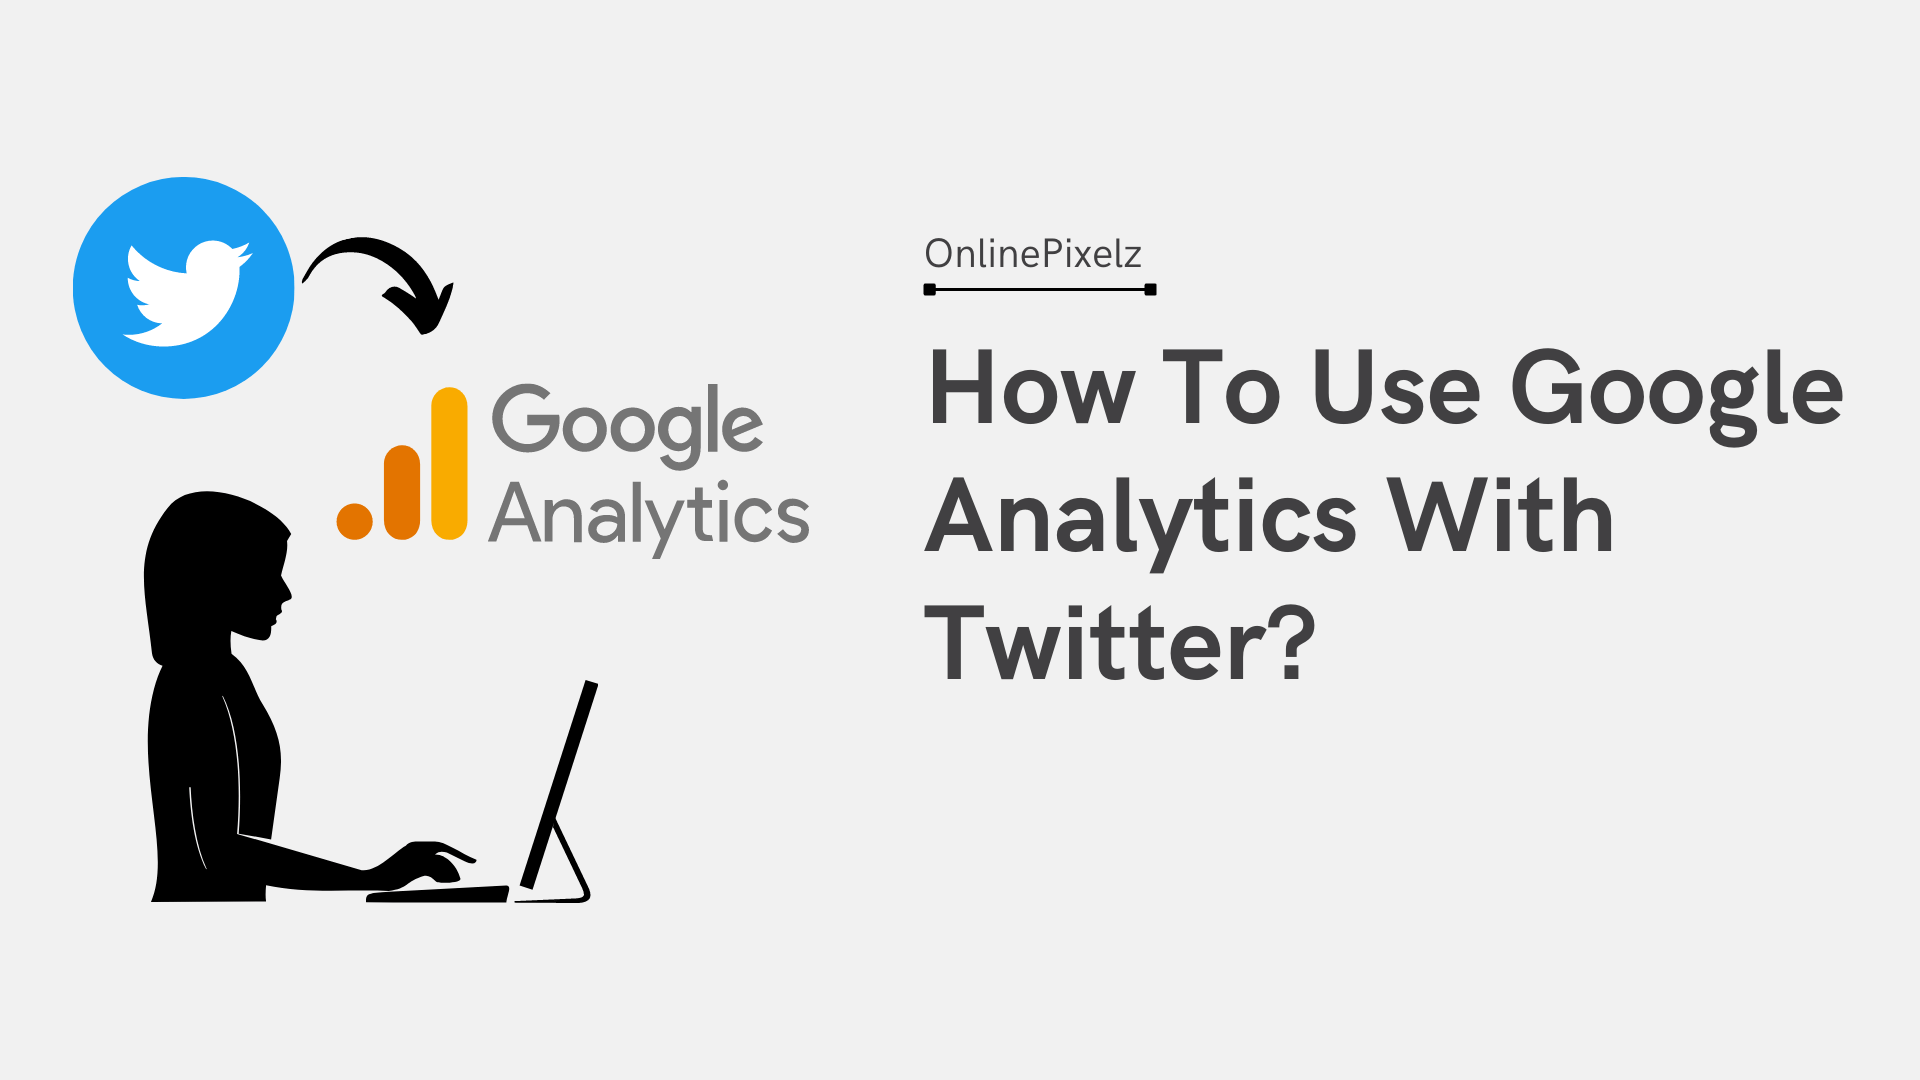 How To Use Google Analytics With Twitter